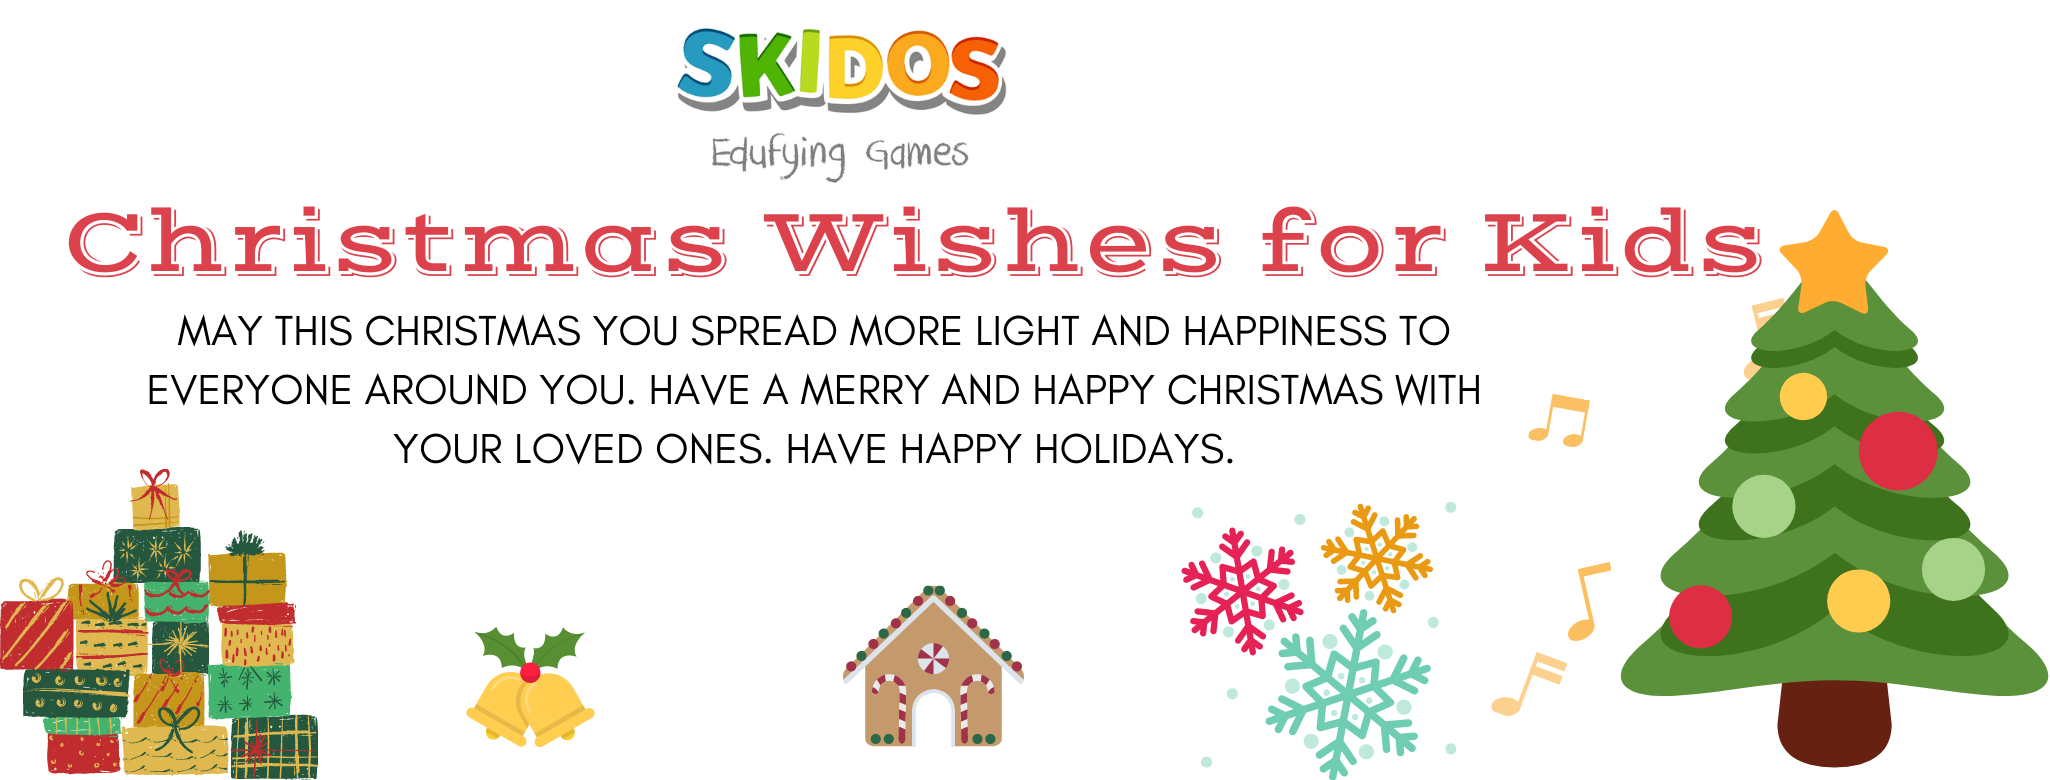 88+ Best Christmas Quotes, Wishes, Words & Sayings For Kids